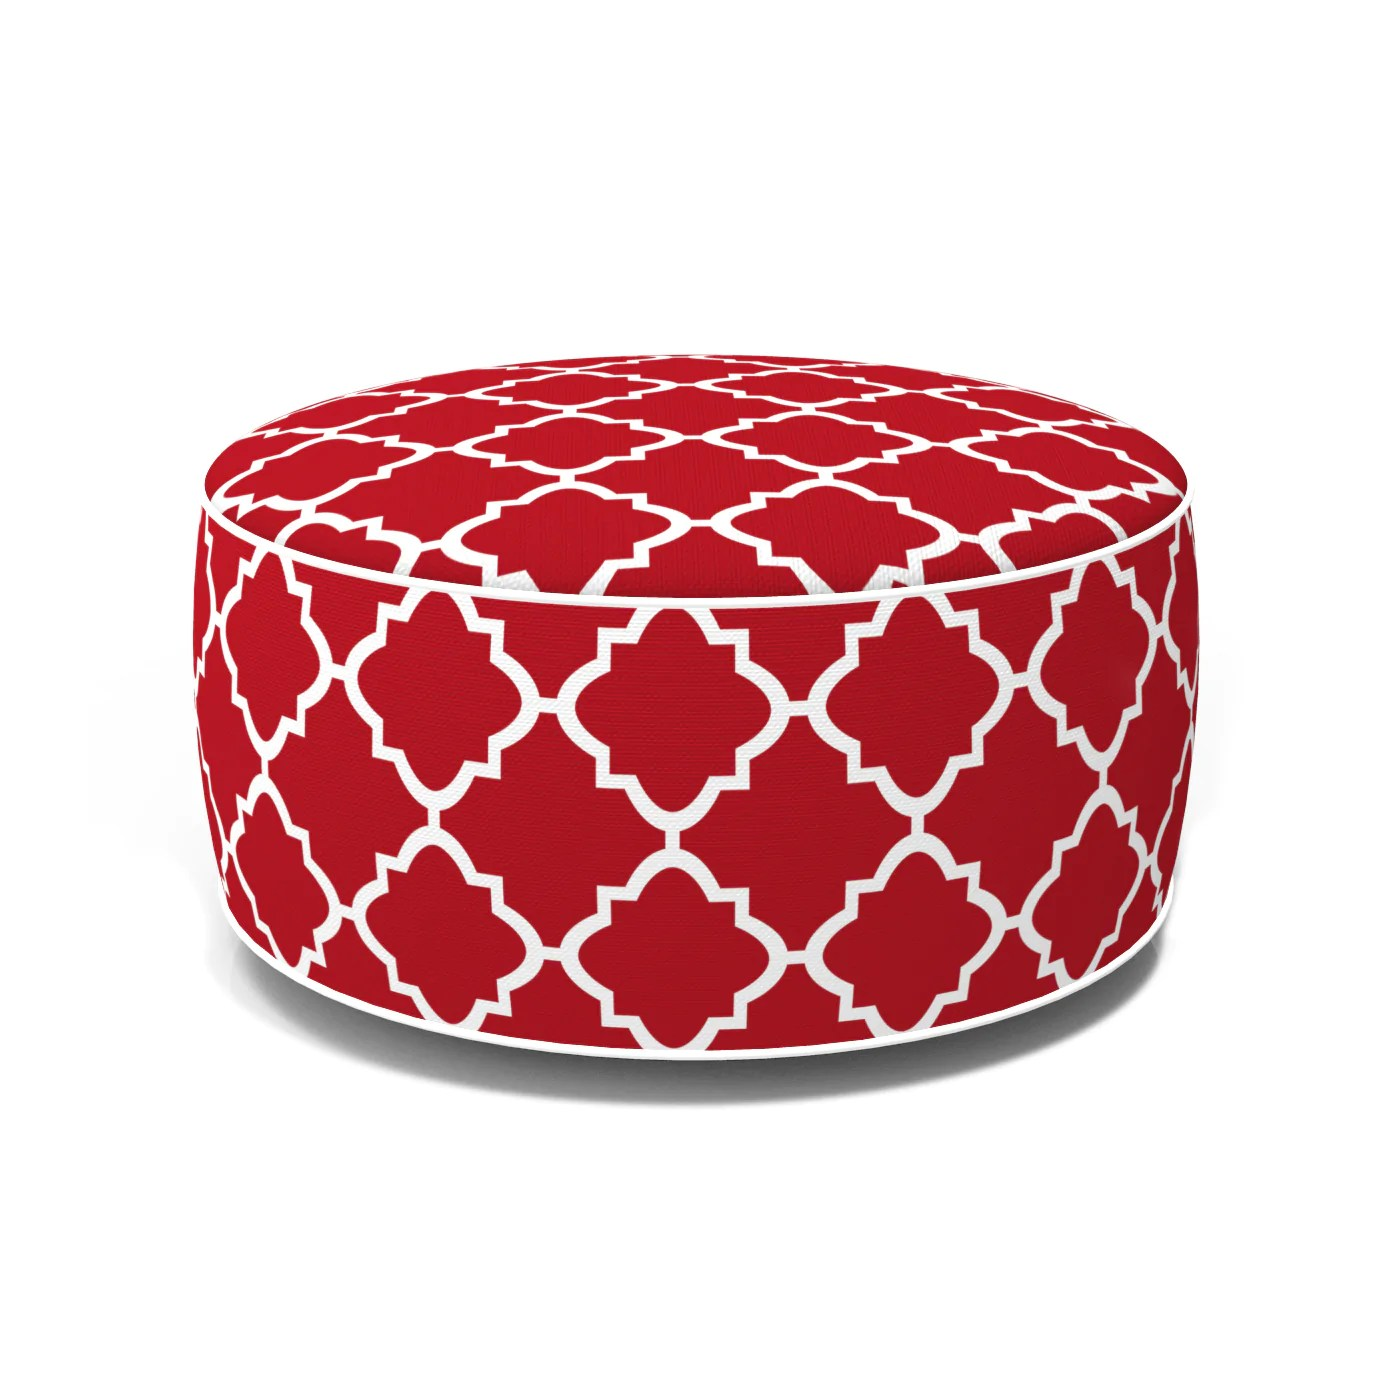 outdoor inflatable ottoman red quatrefoil lattice round 21x9 inch patio foot stools and ottomans